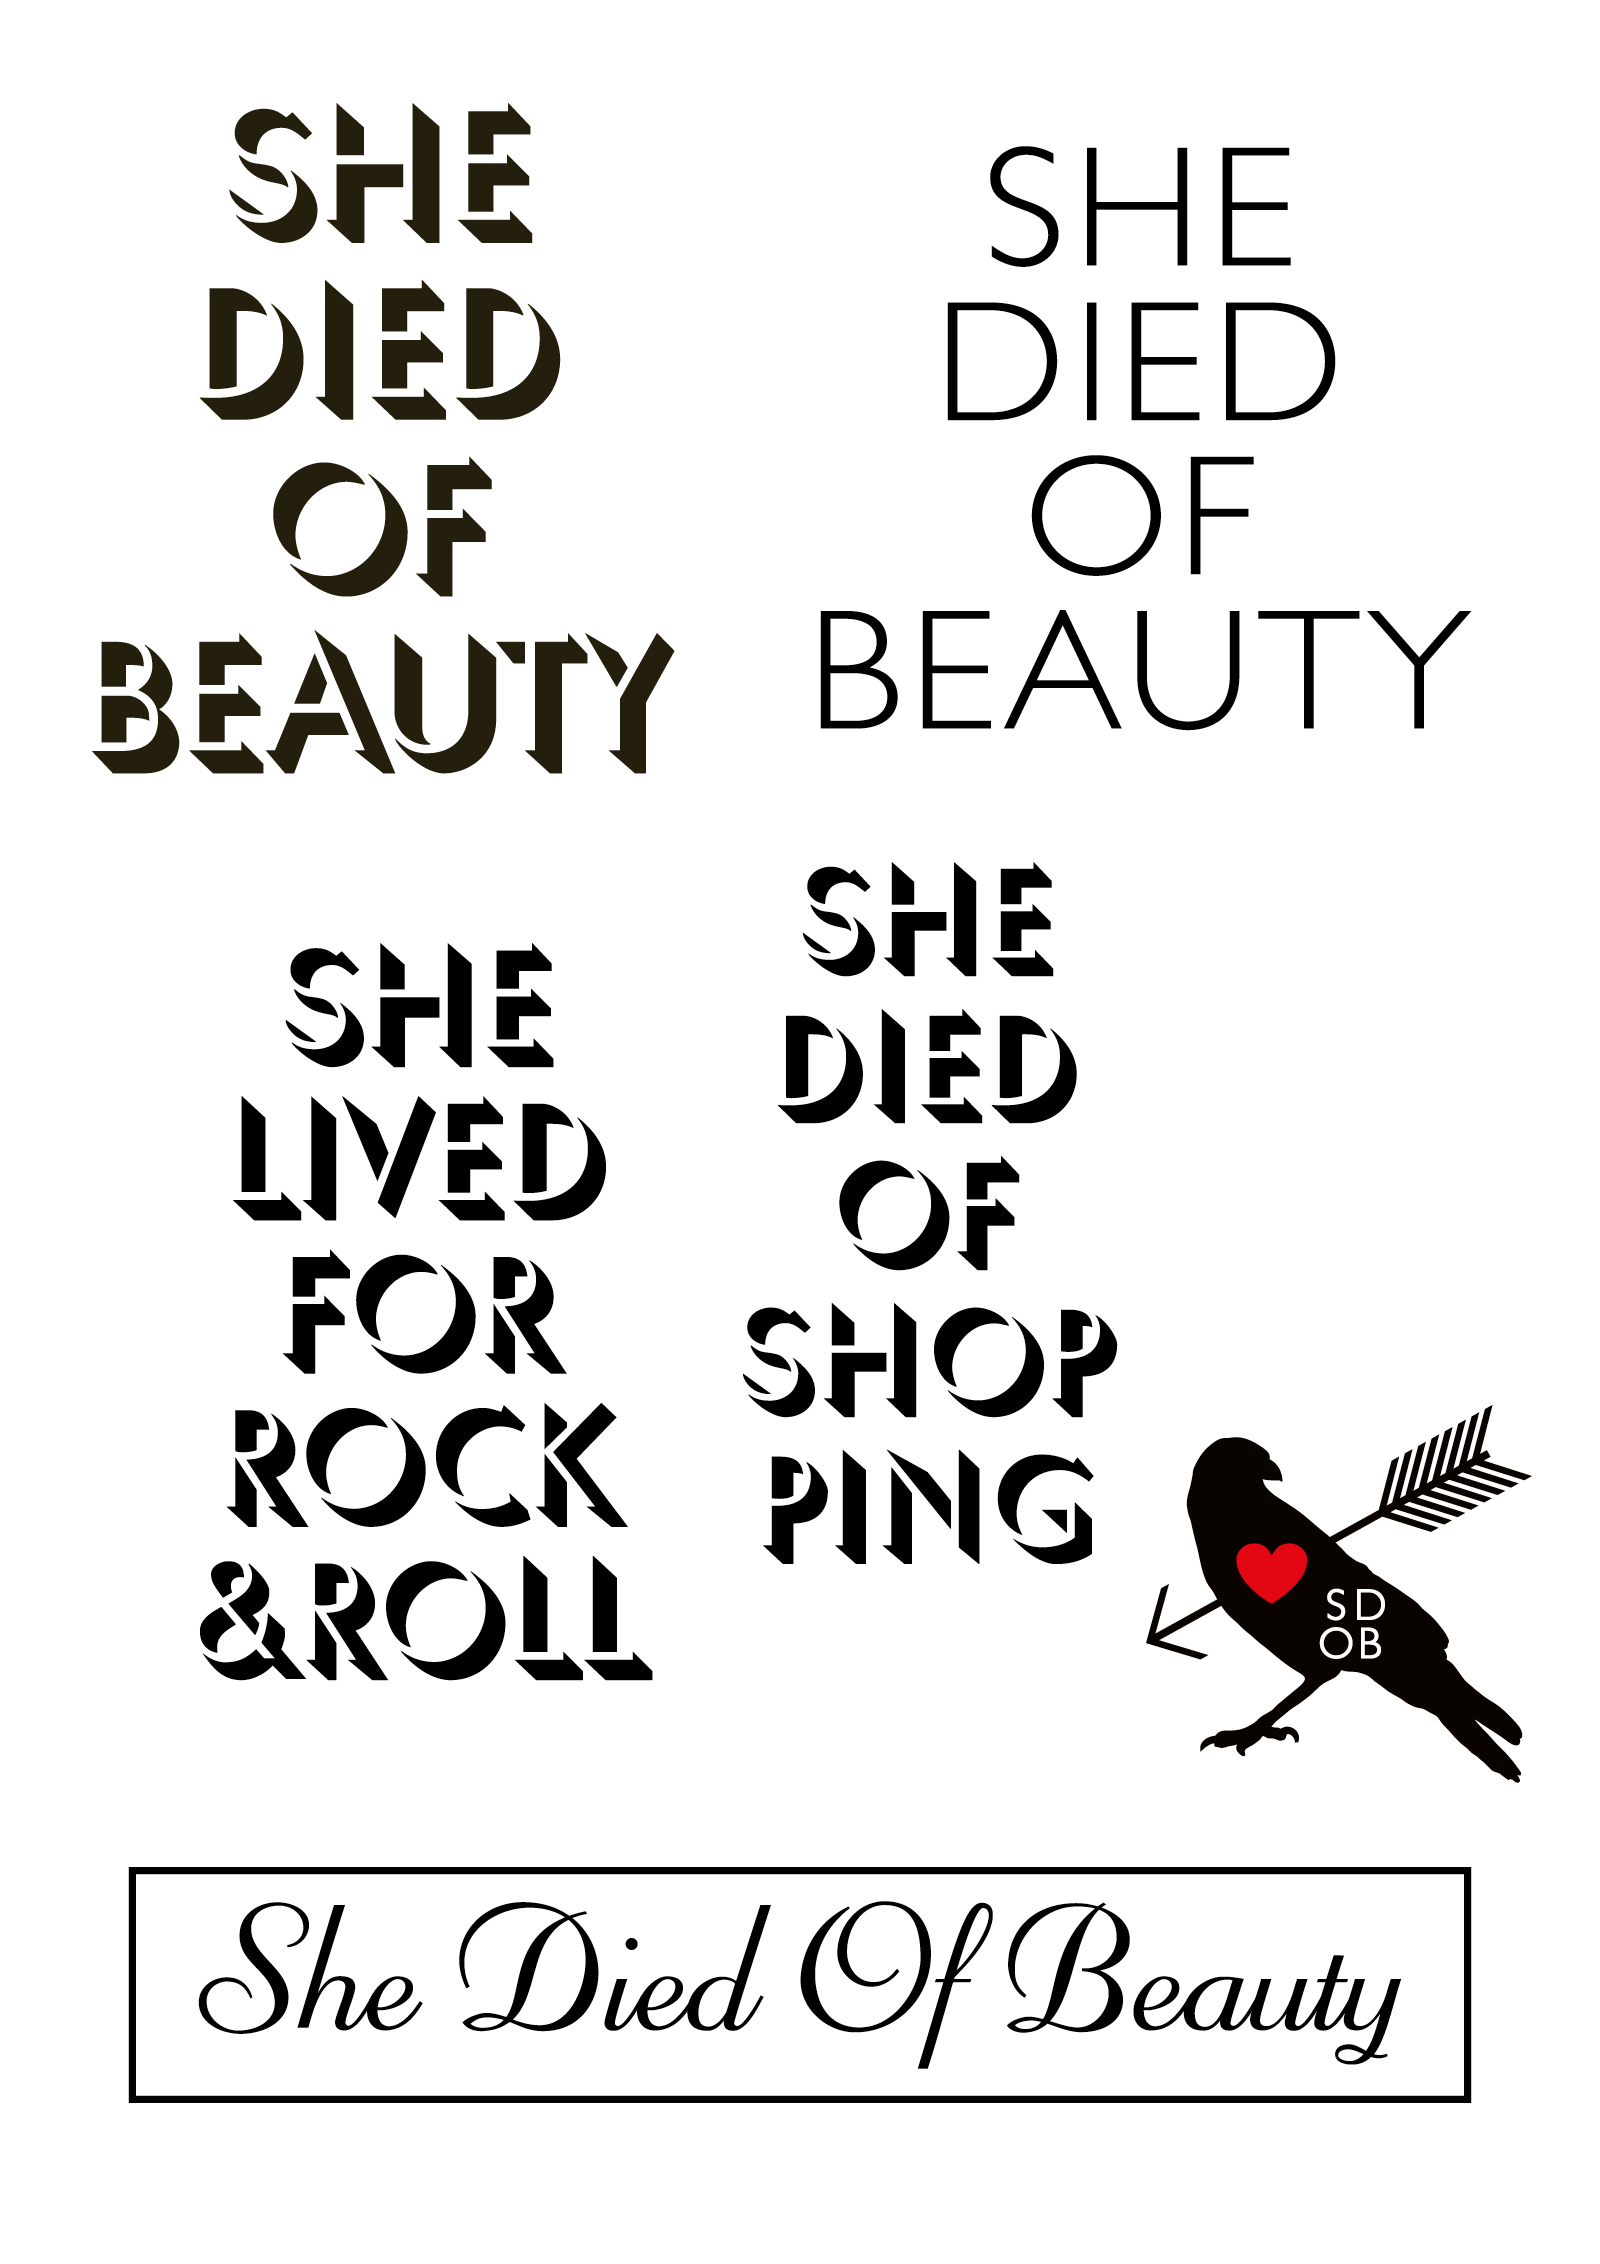 She Died Of Beauty | Art Direction | Design | By James-Lee Duffy